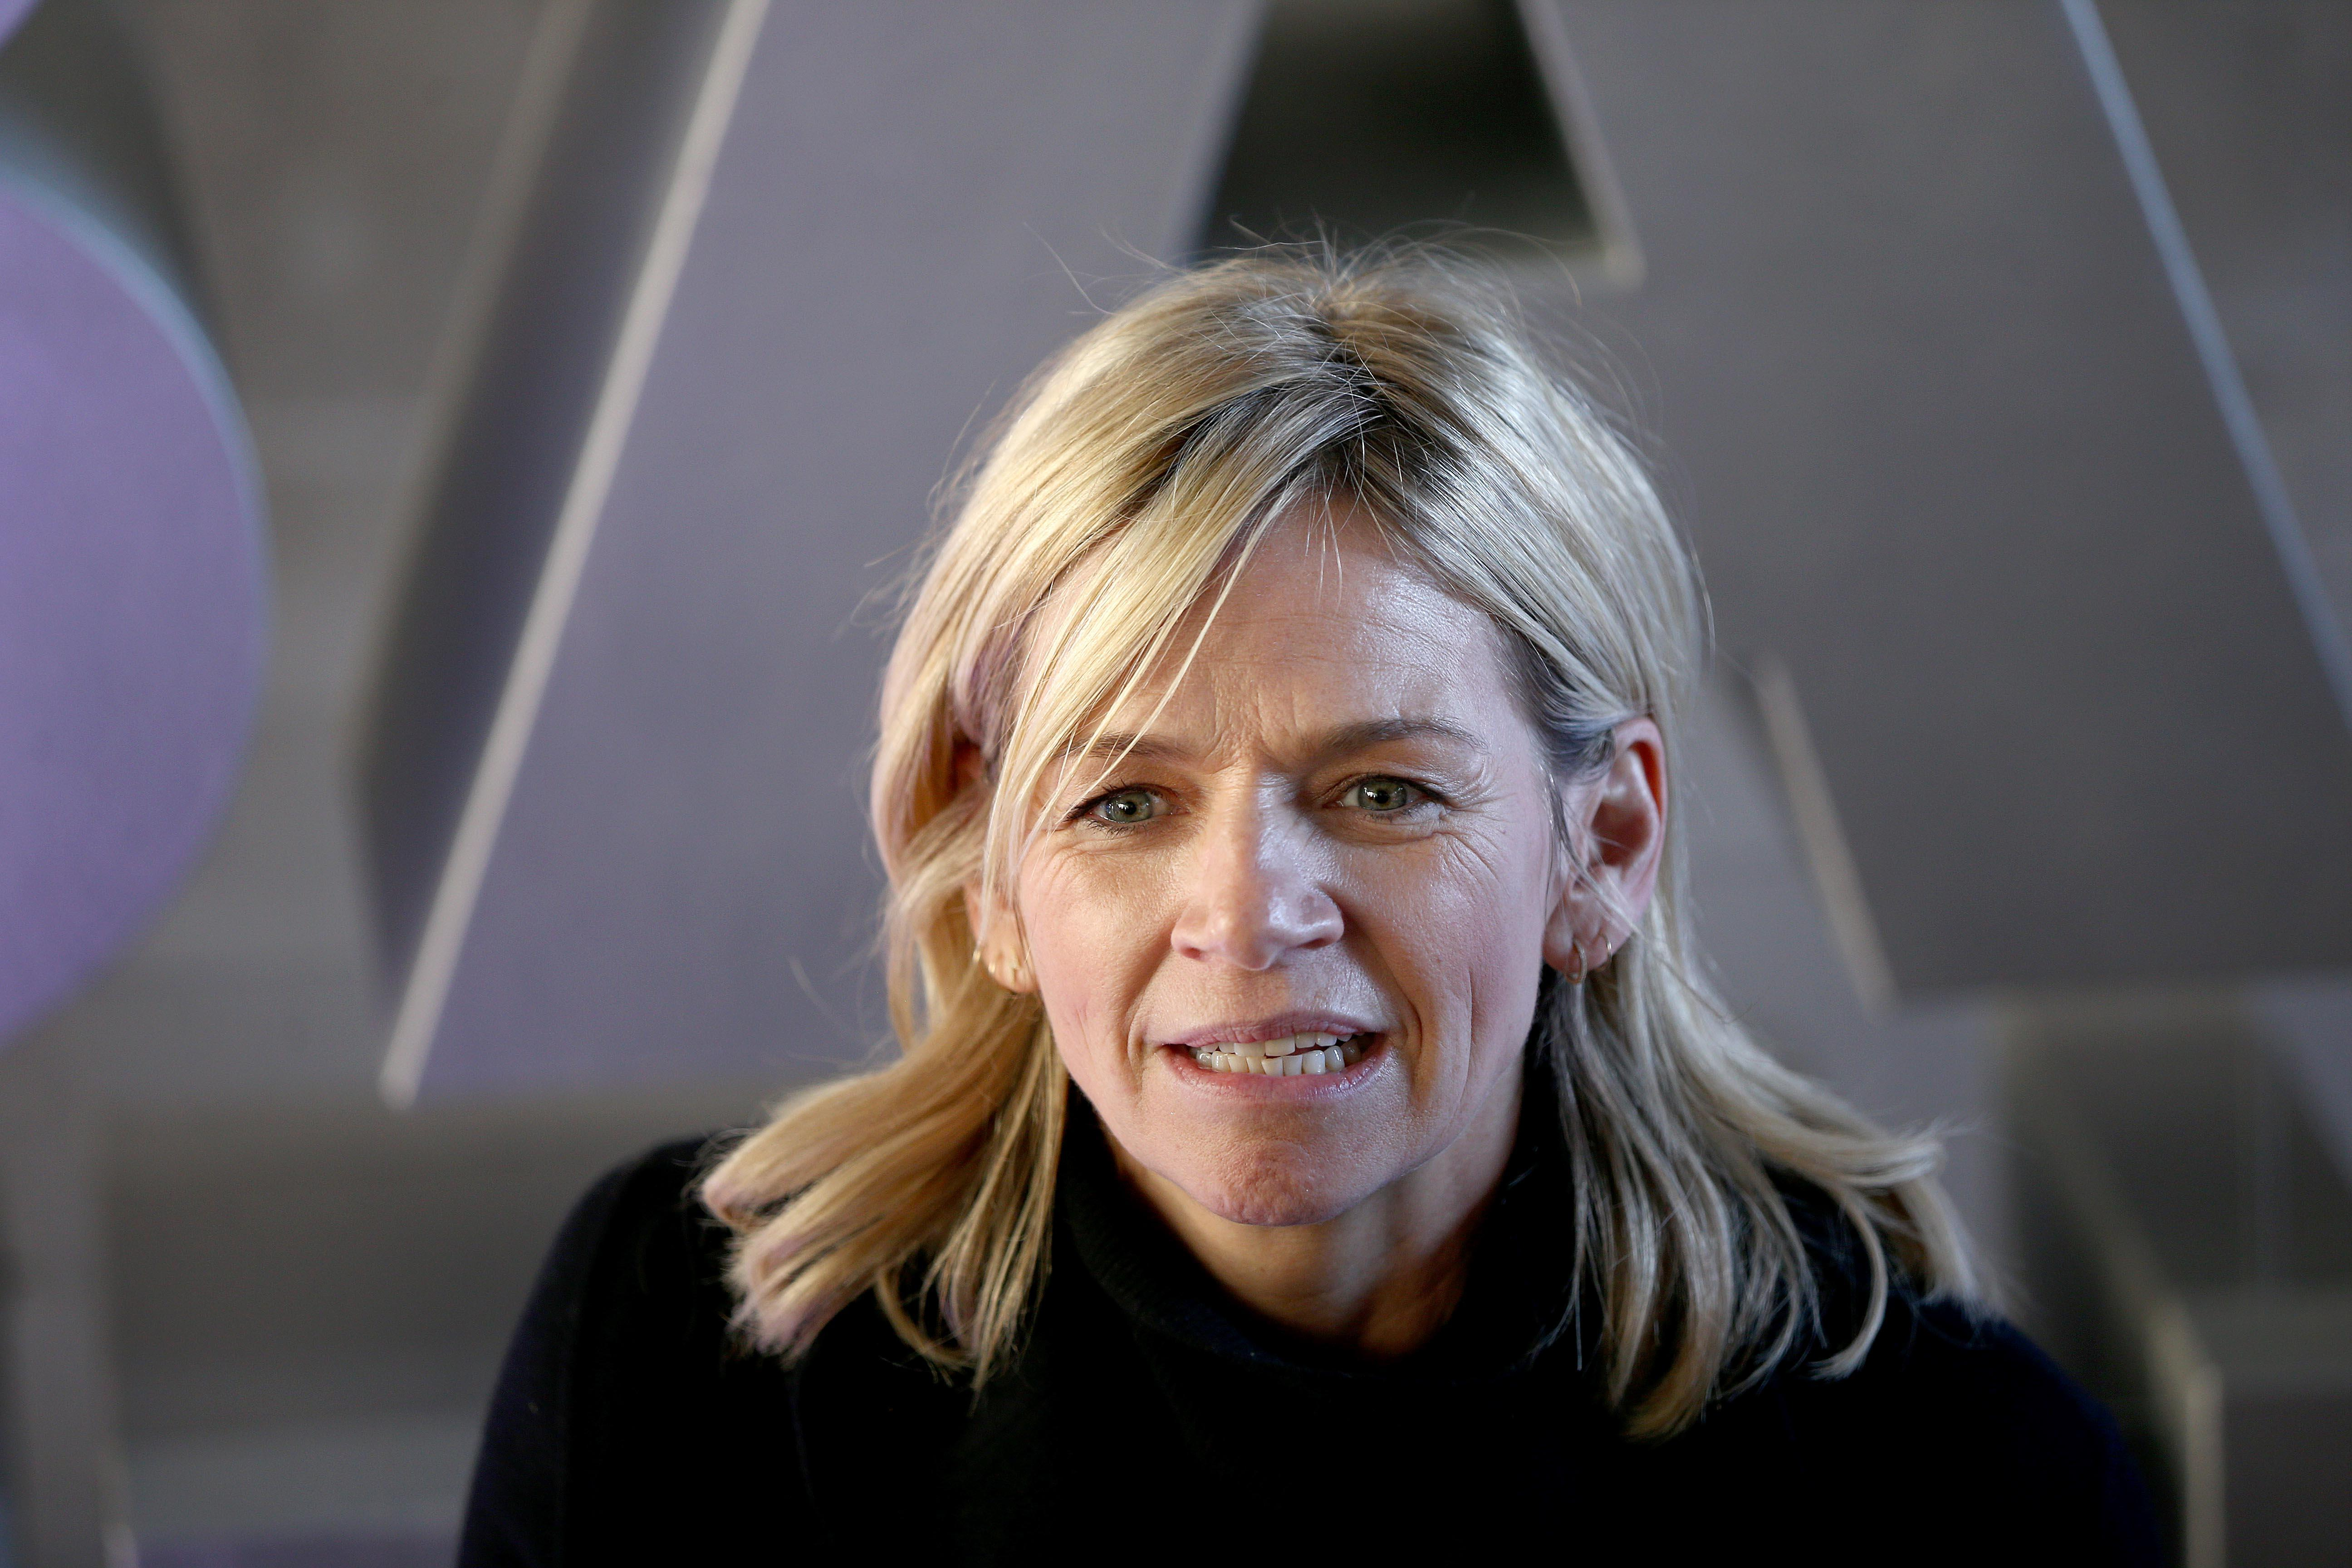 Zoe Ball in shock for two years after partner Billy Yates' death